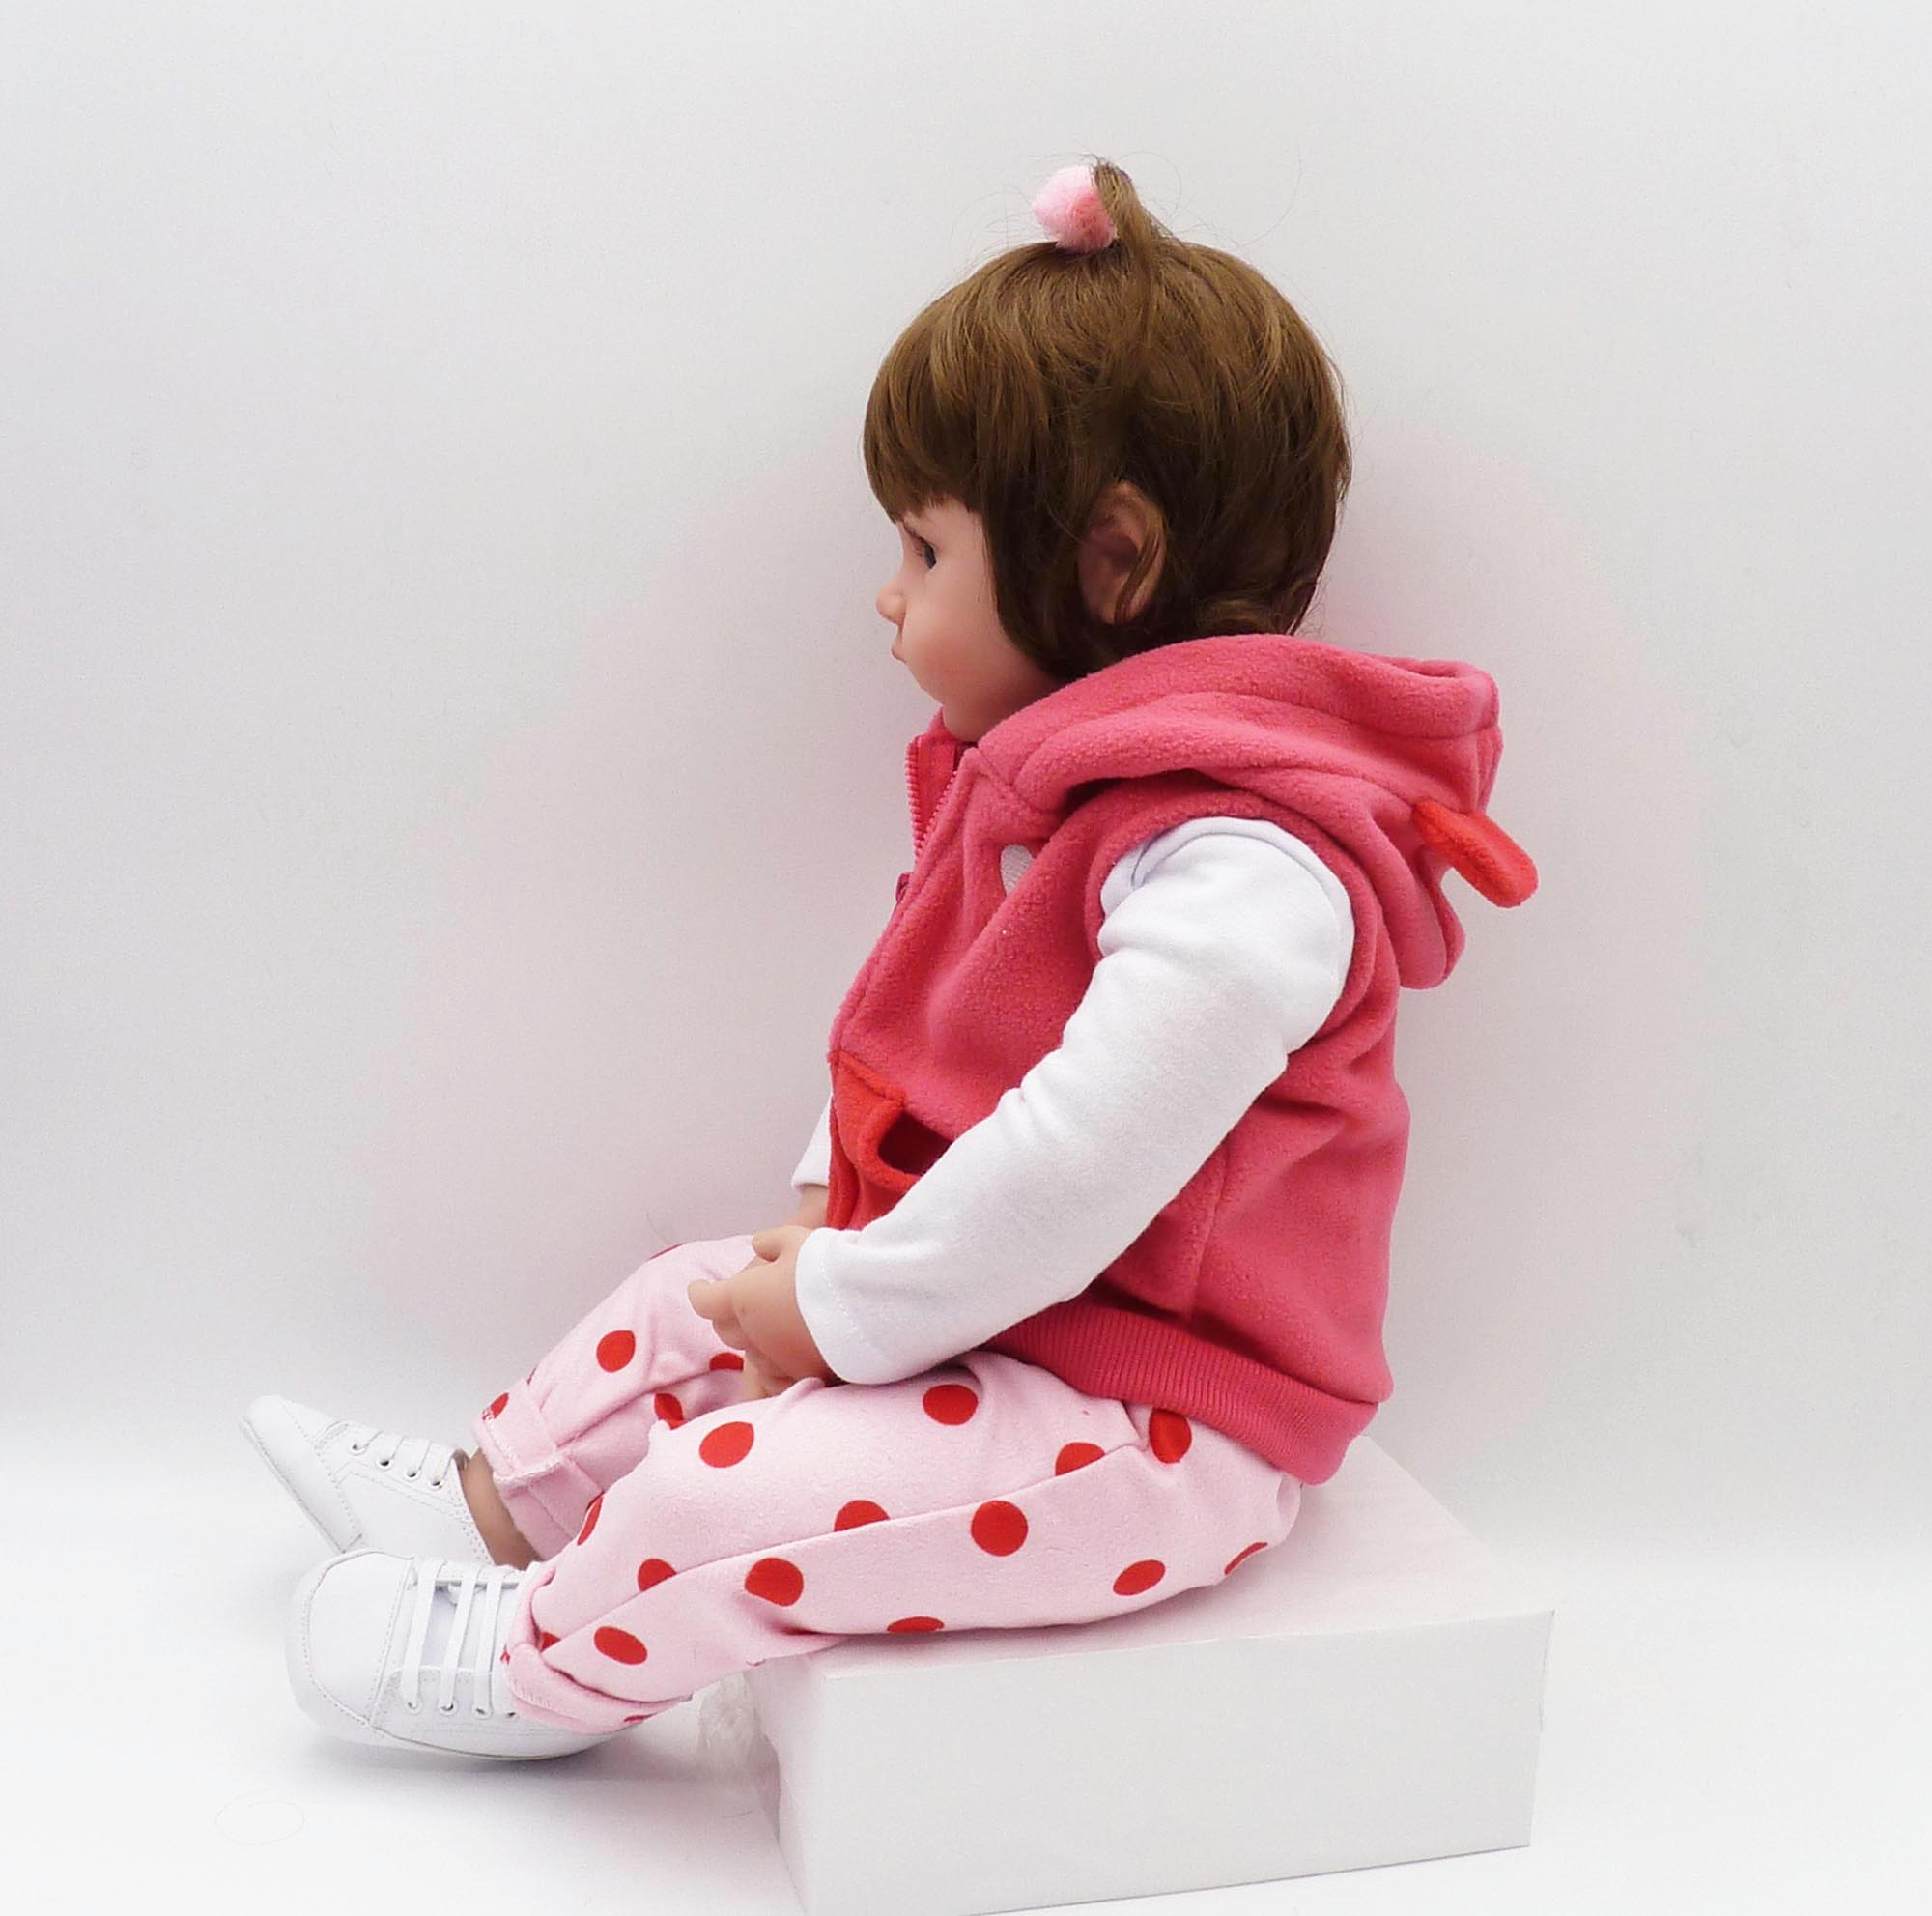 Image 3 - bebe reborn19inch 48cm lifelike doll baby newborn wholesale toys for children Christmas gift and birthday gift doll toys-in Dolls from Toys & Hobbies